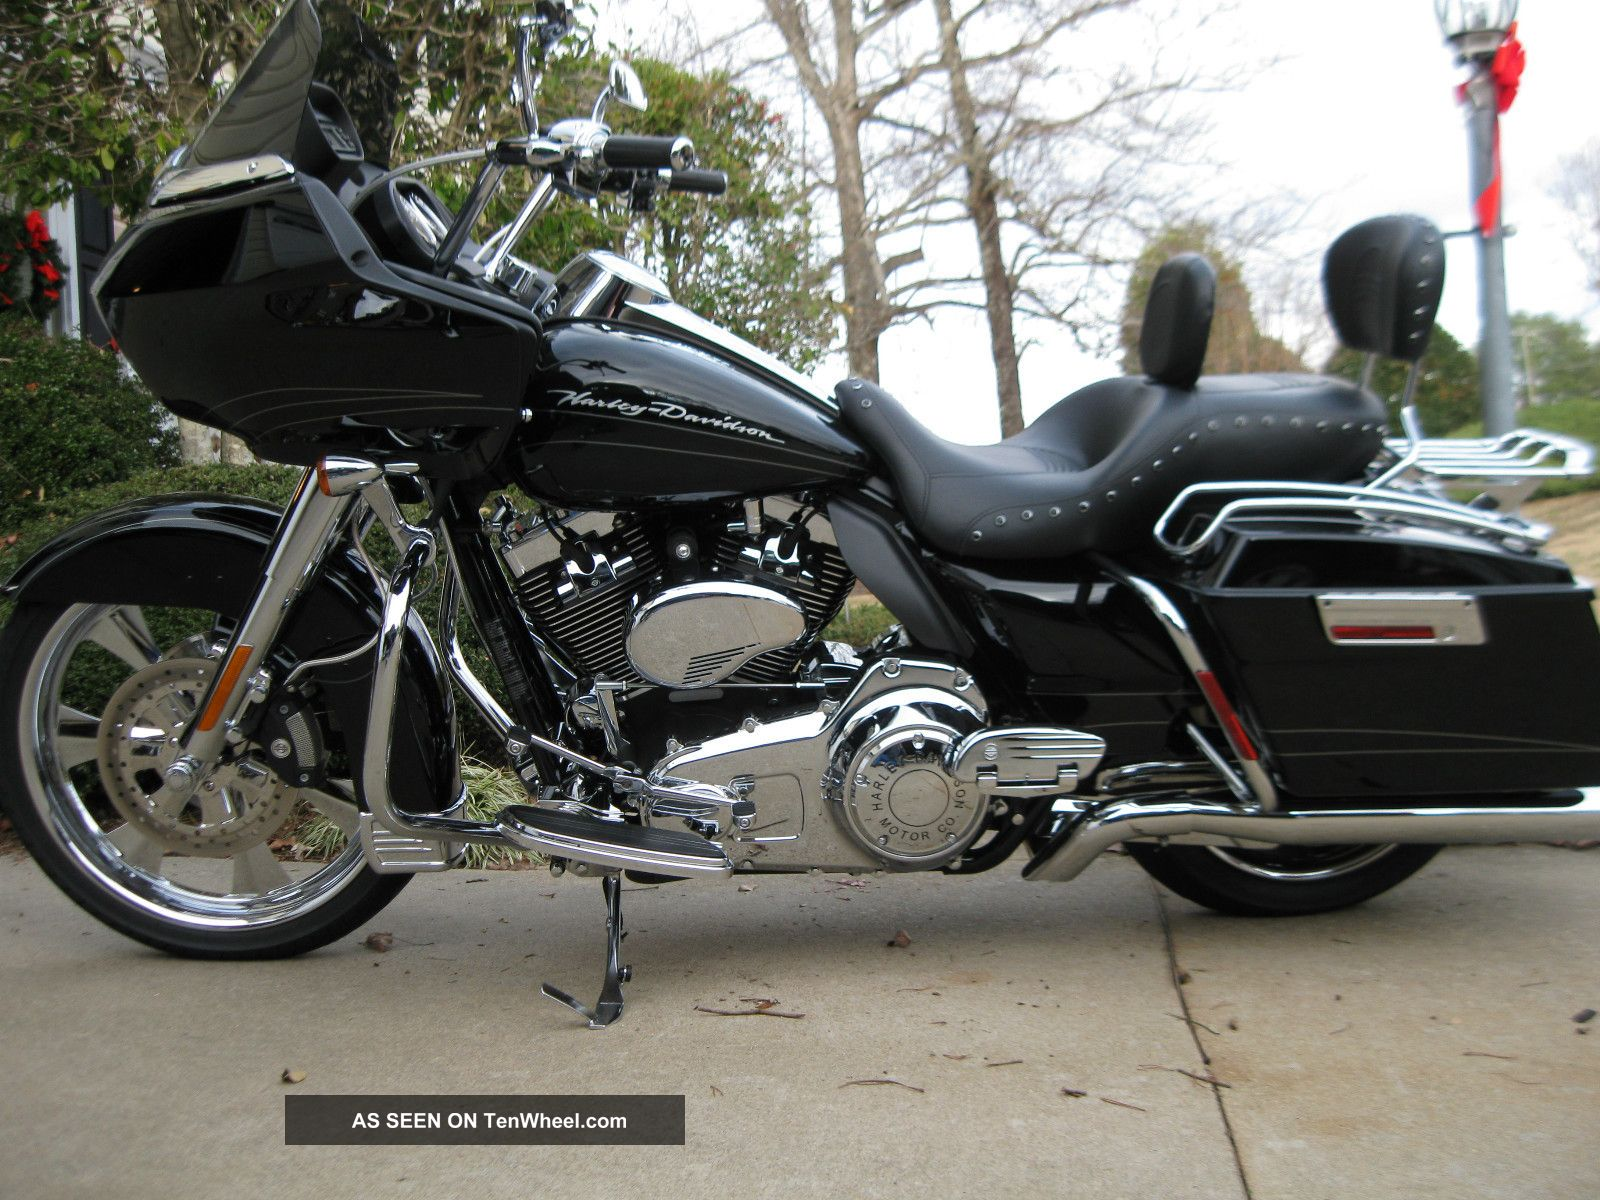 2010 Harley Davidson Road Glide Fltrx Touring photo